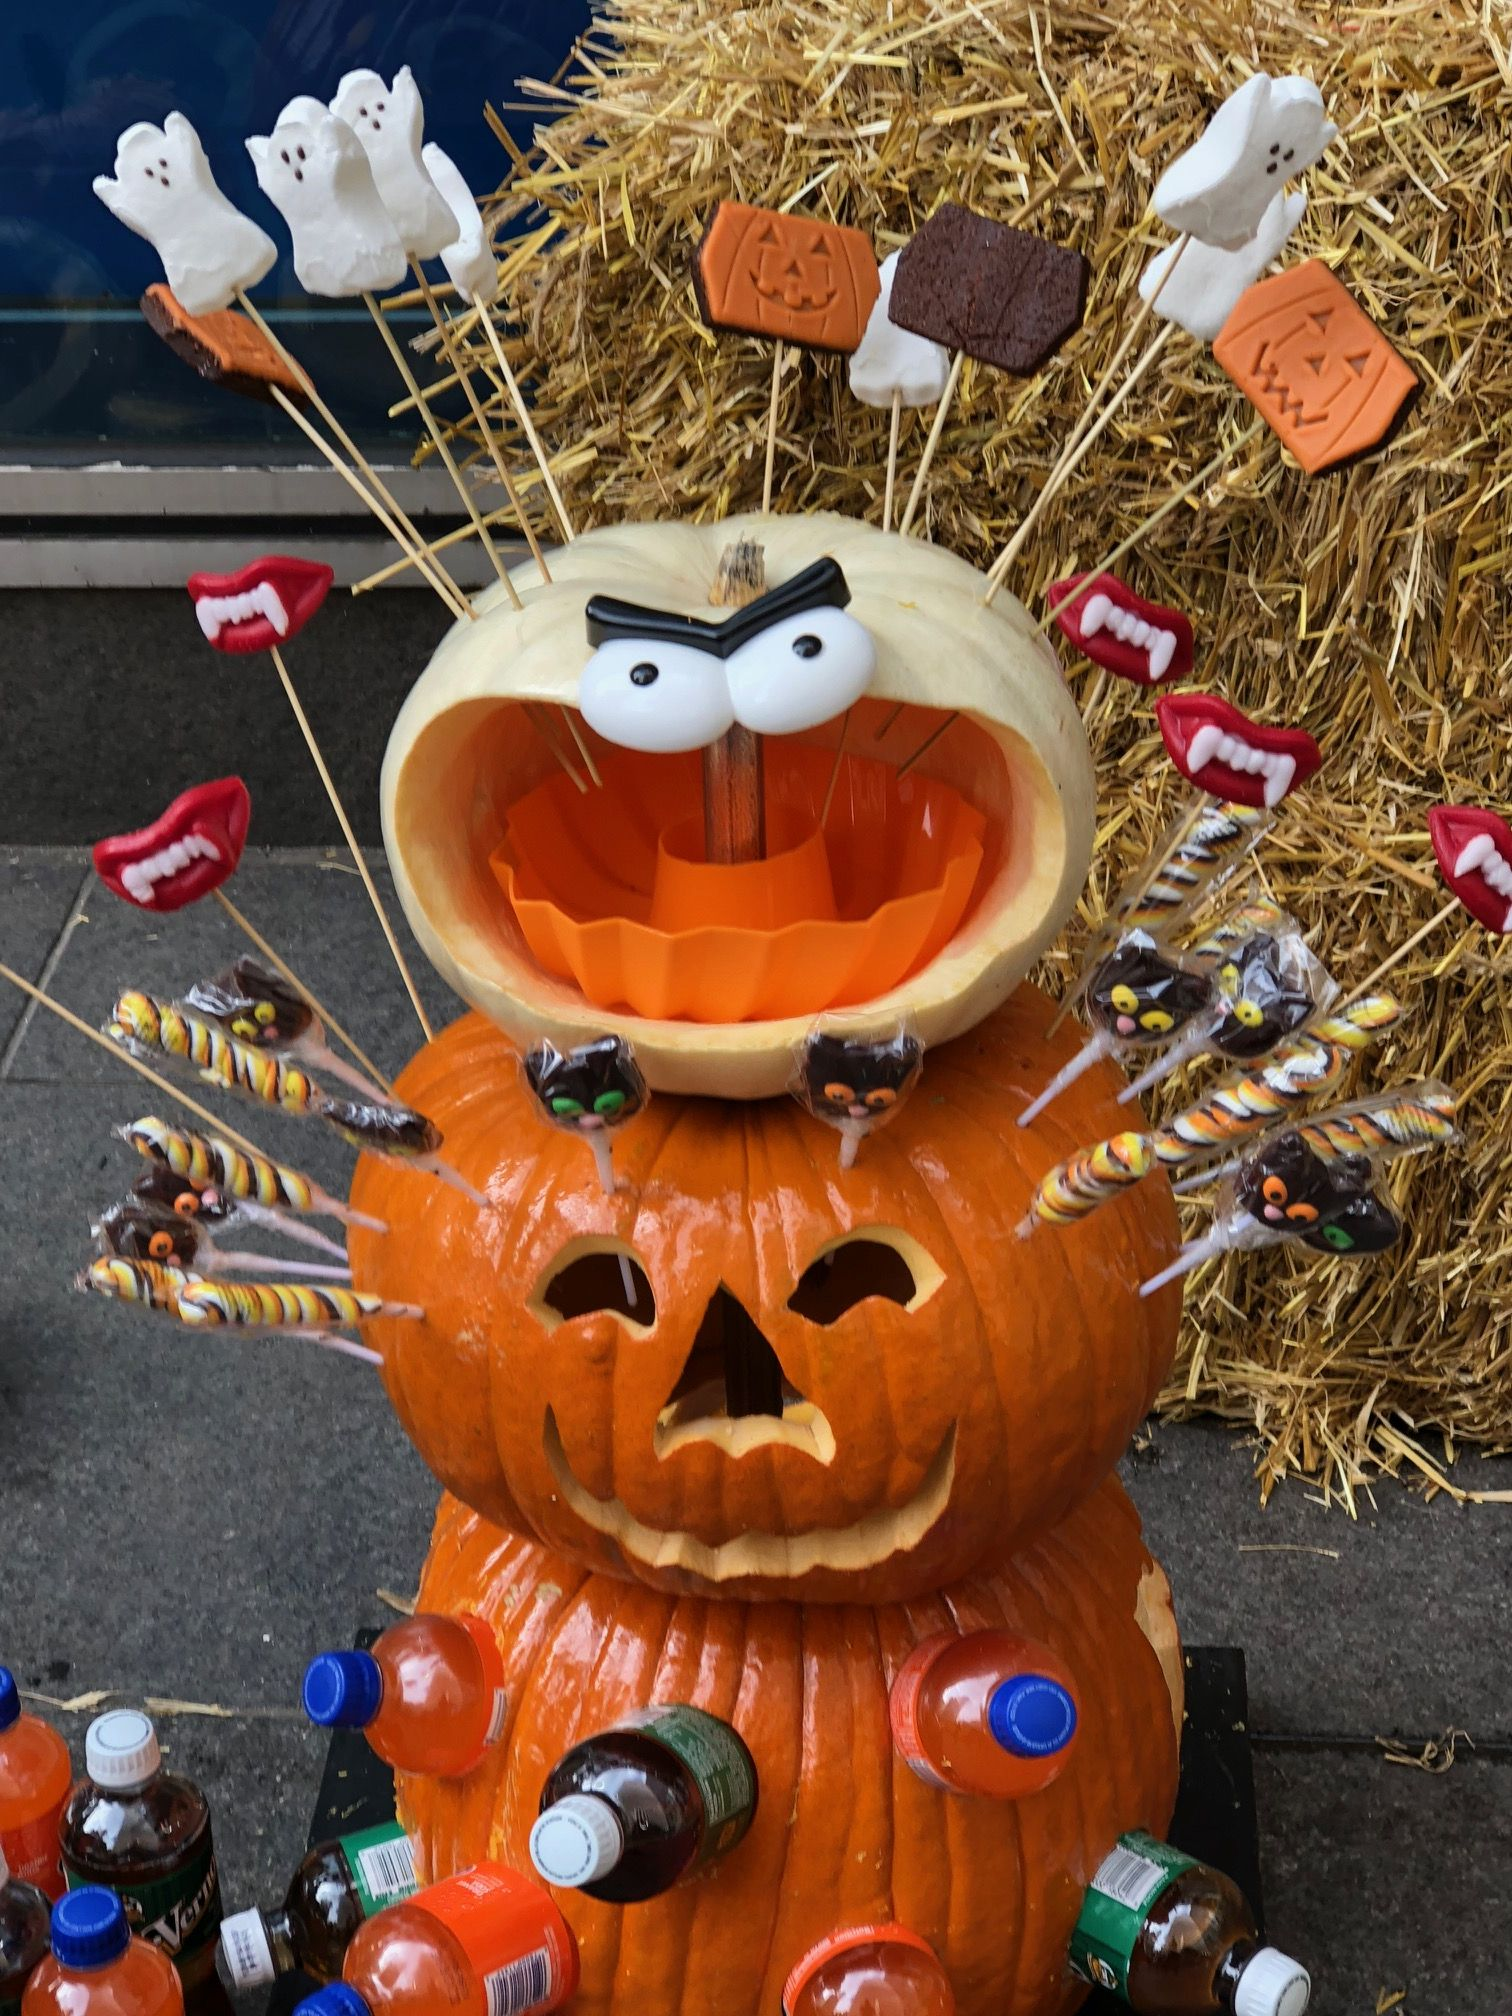 Mr. Handyman created this pumpkin using a cordless drill